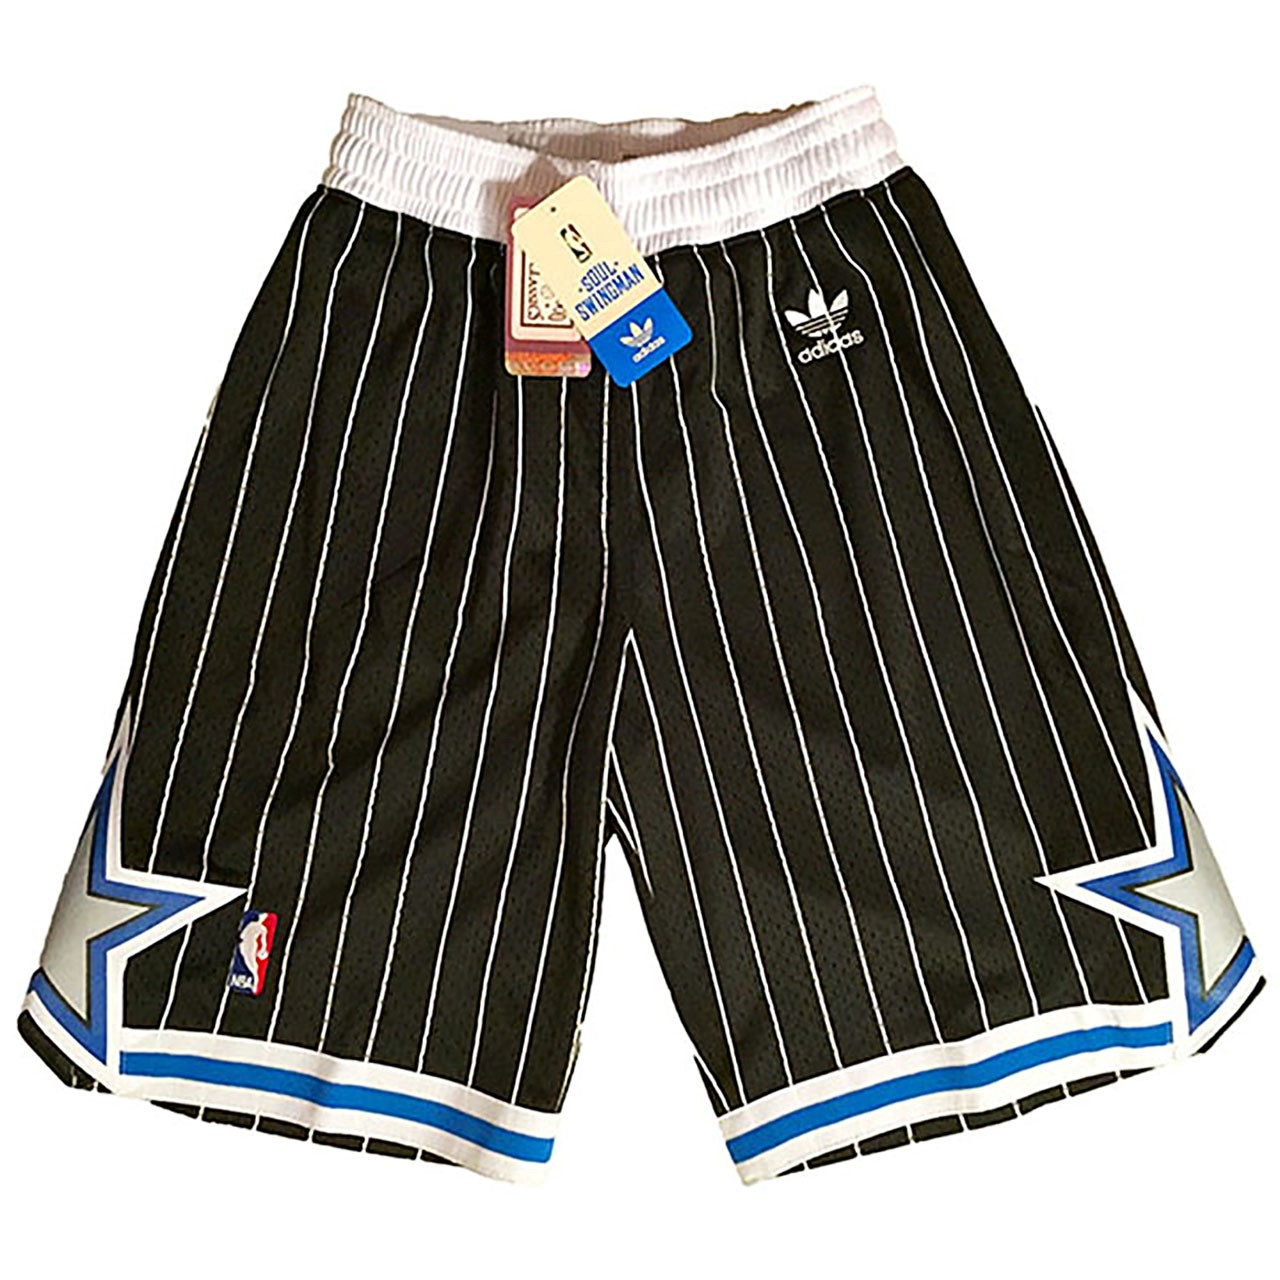 Pantaloni Basket Orlando Magic Nike Nero Acquista